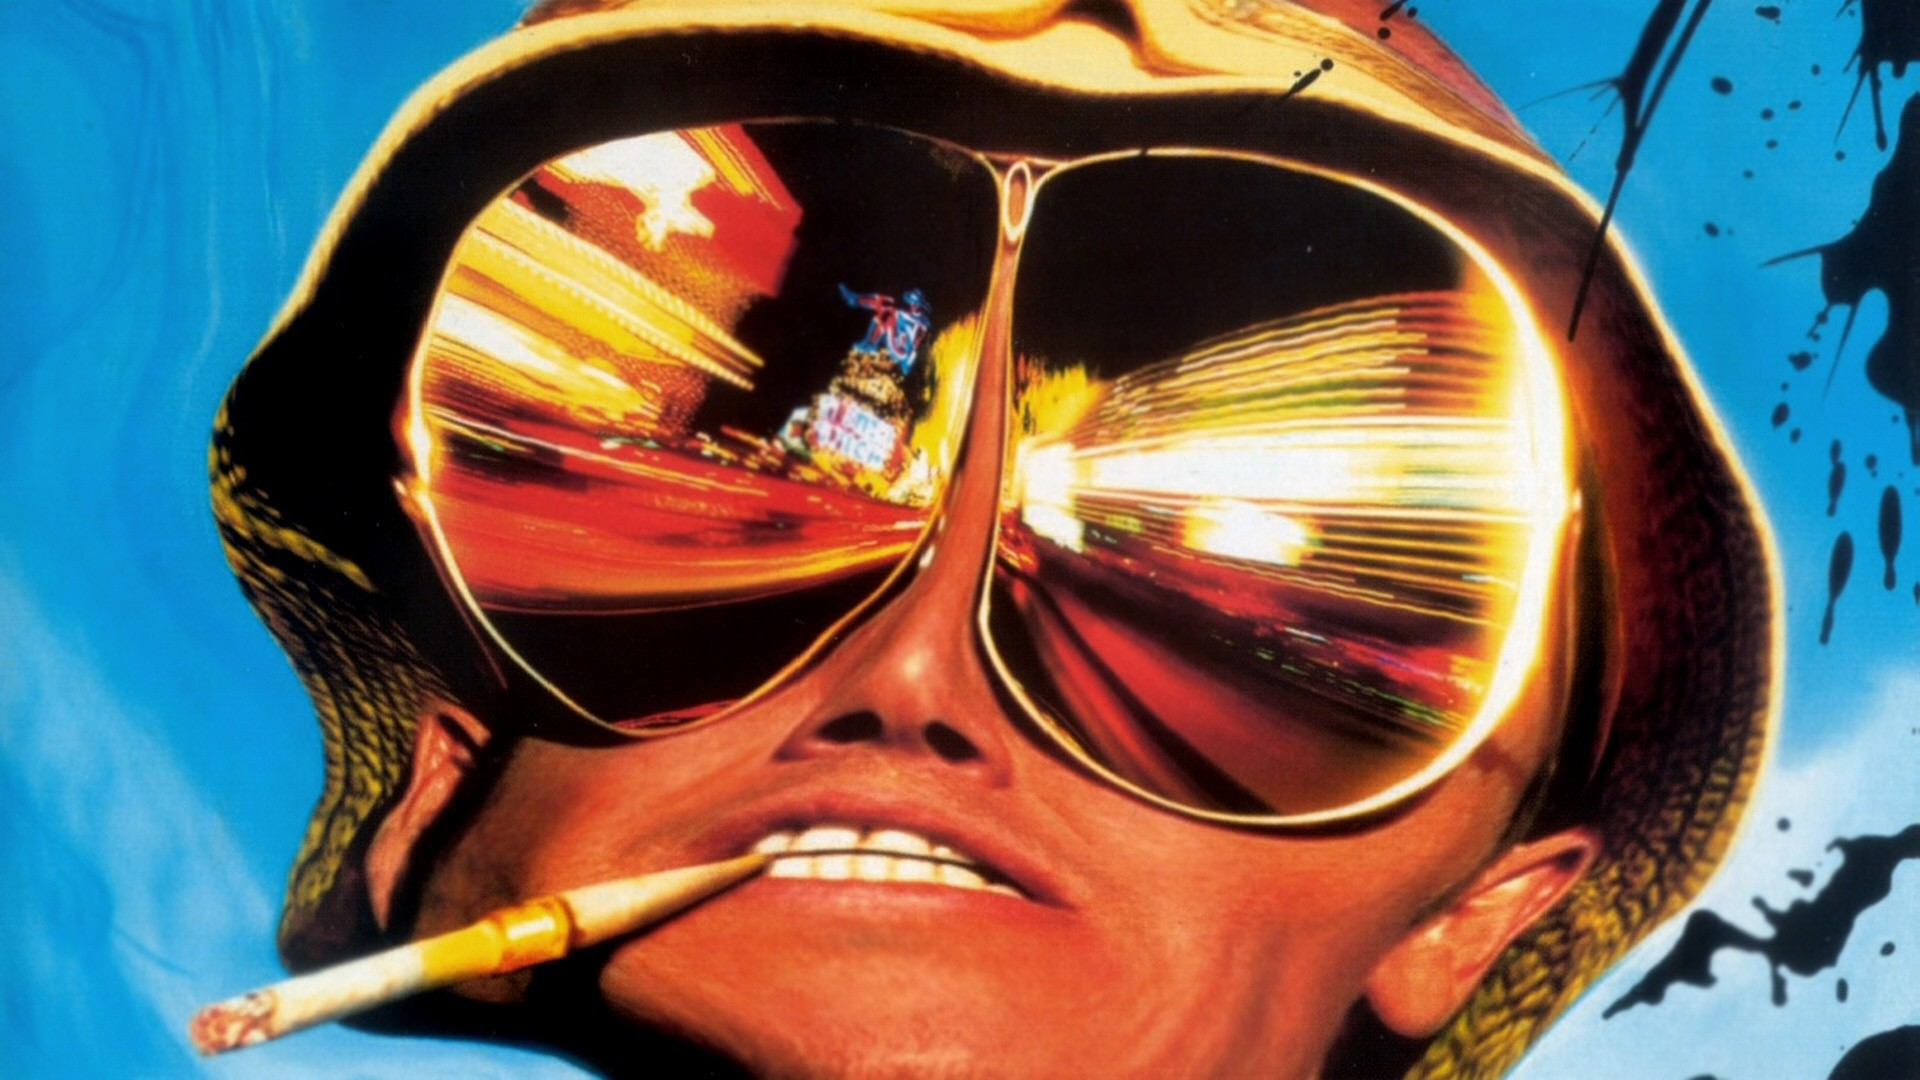 Res: 1920x1080, Fear And Loathing In Las Vegas Wallpapers Art Print Movie Wallpaper